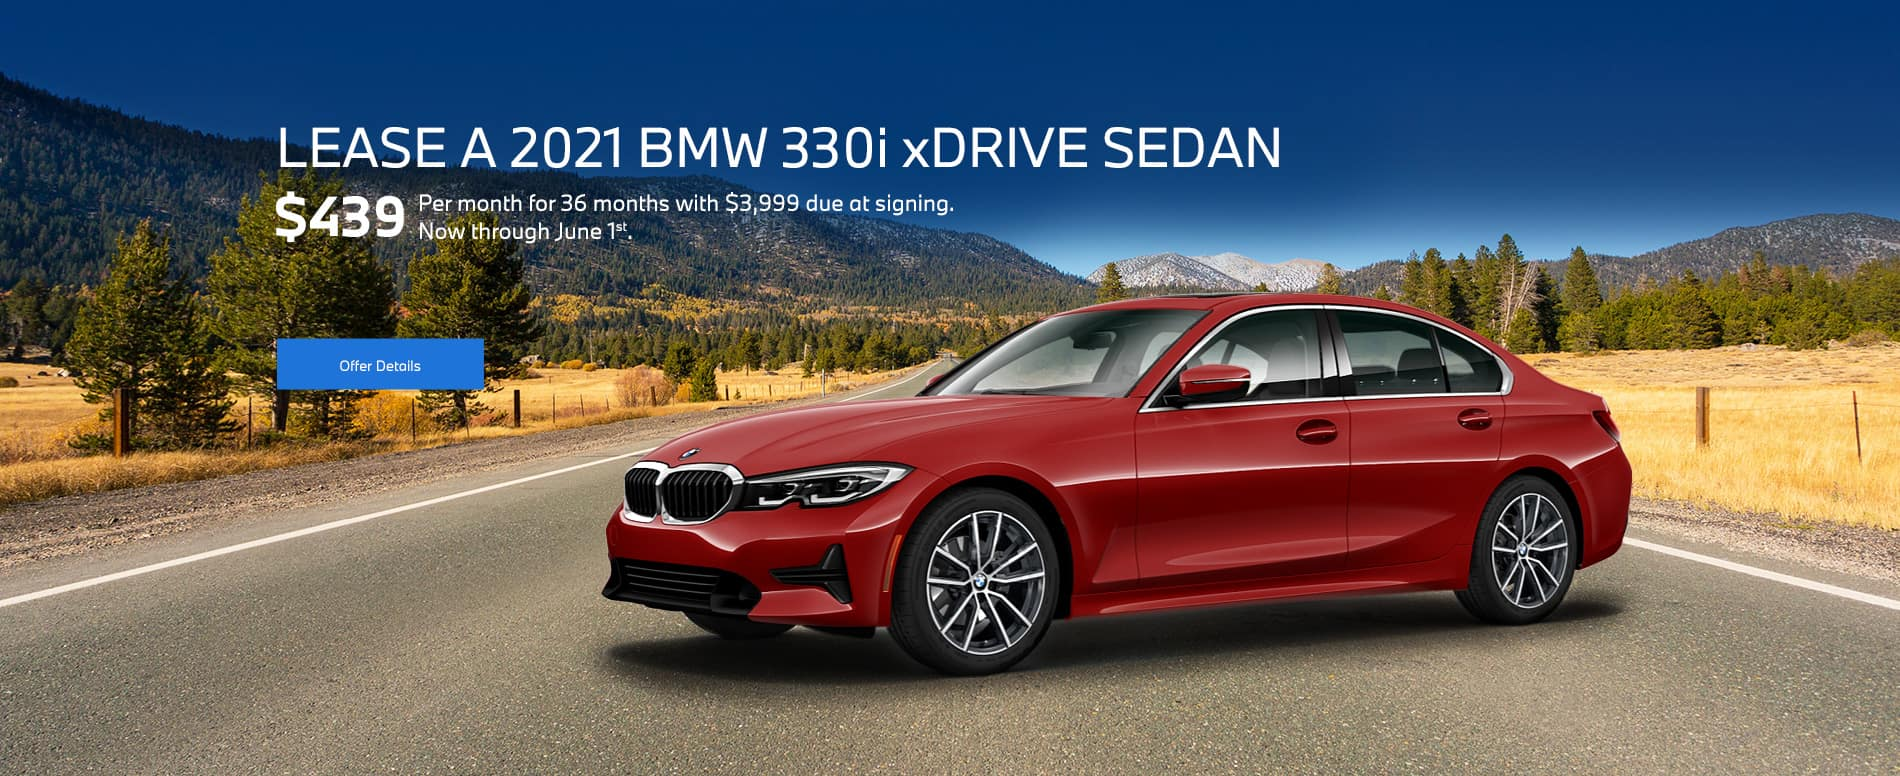 A red new 2021 BMW 330i leasing for $439/month for 36 months with $3,999 due at signing